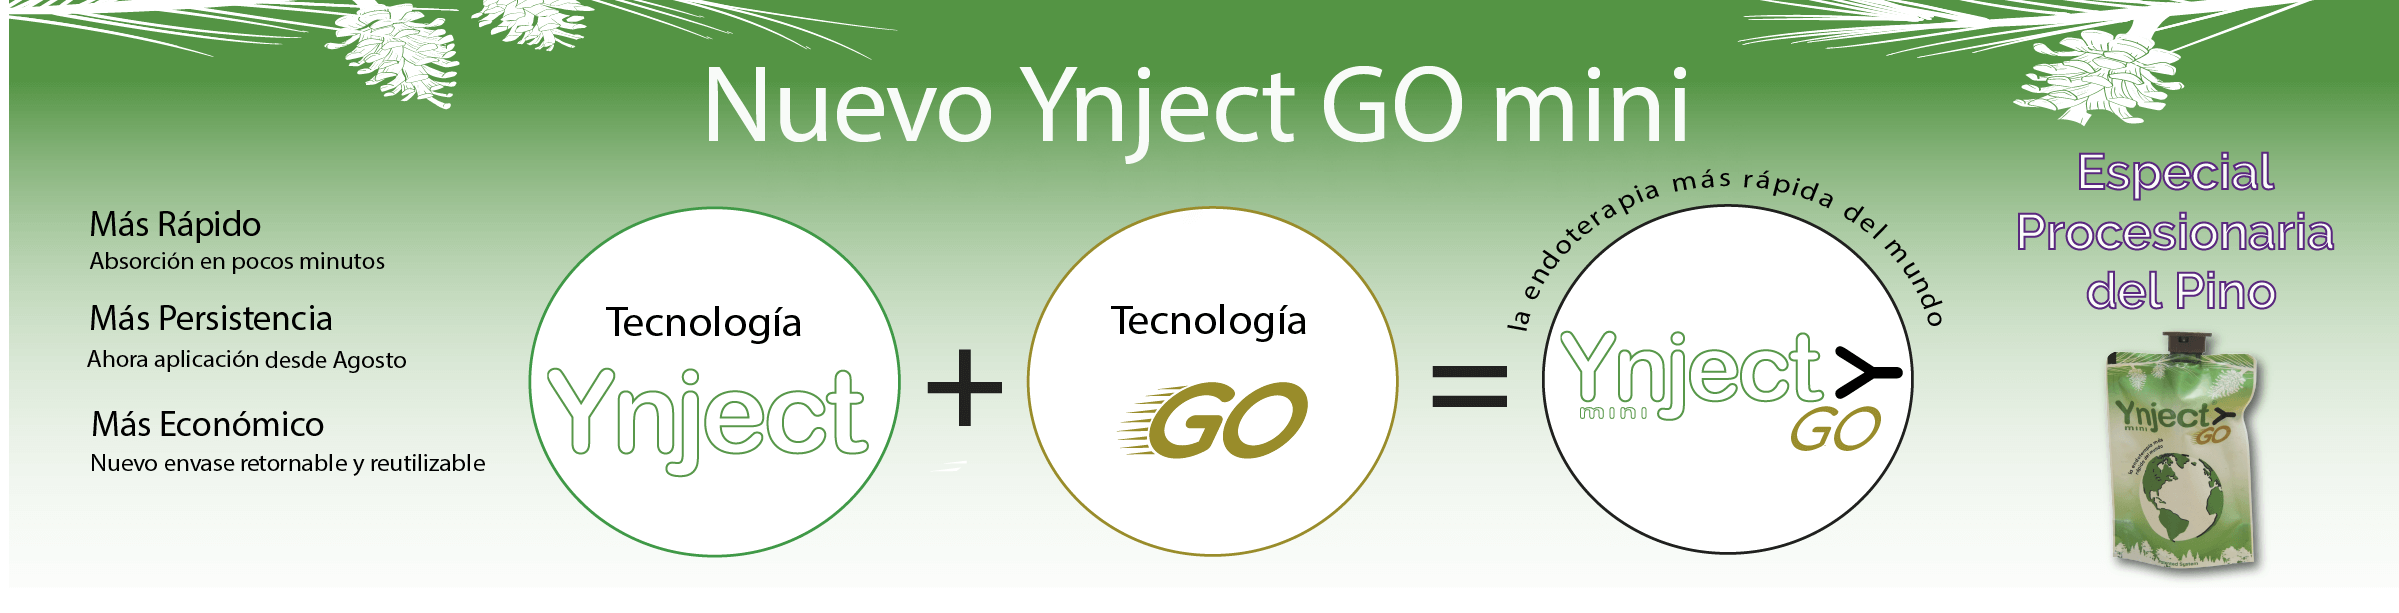 Ynject go mini